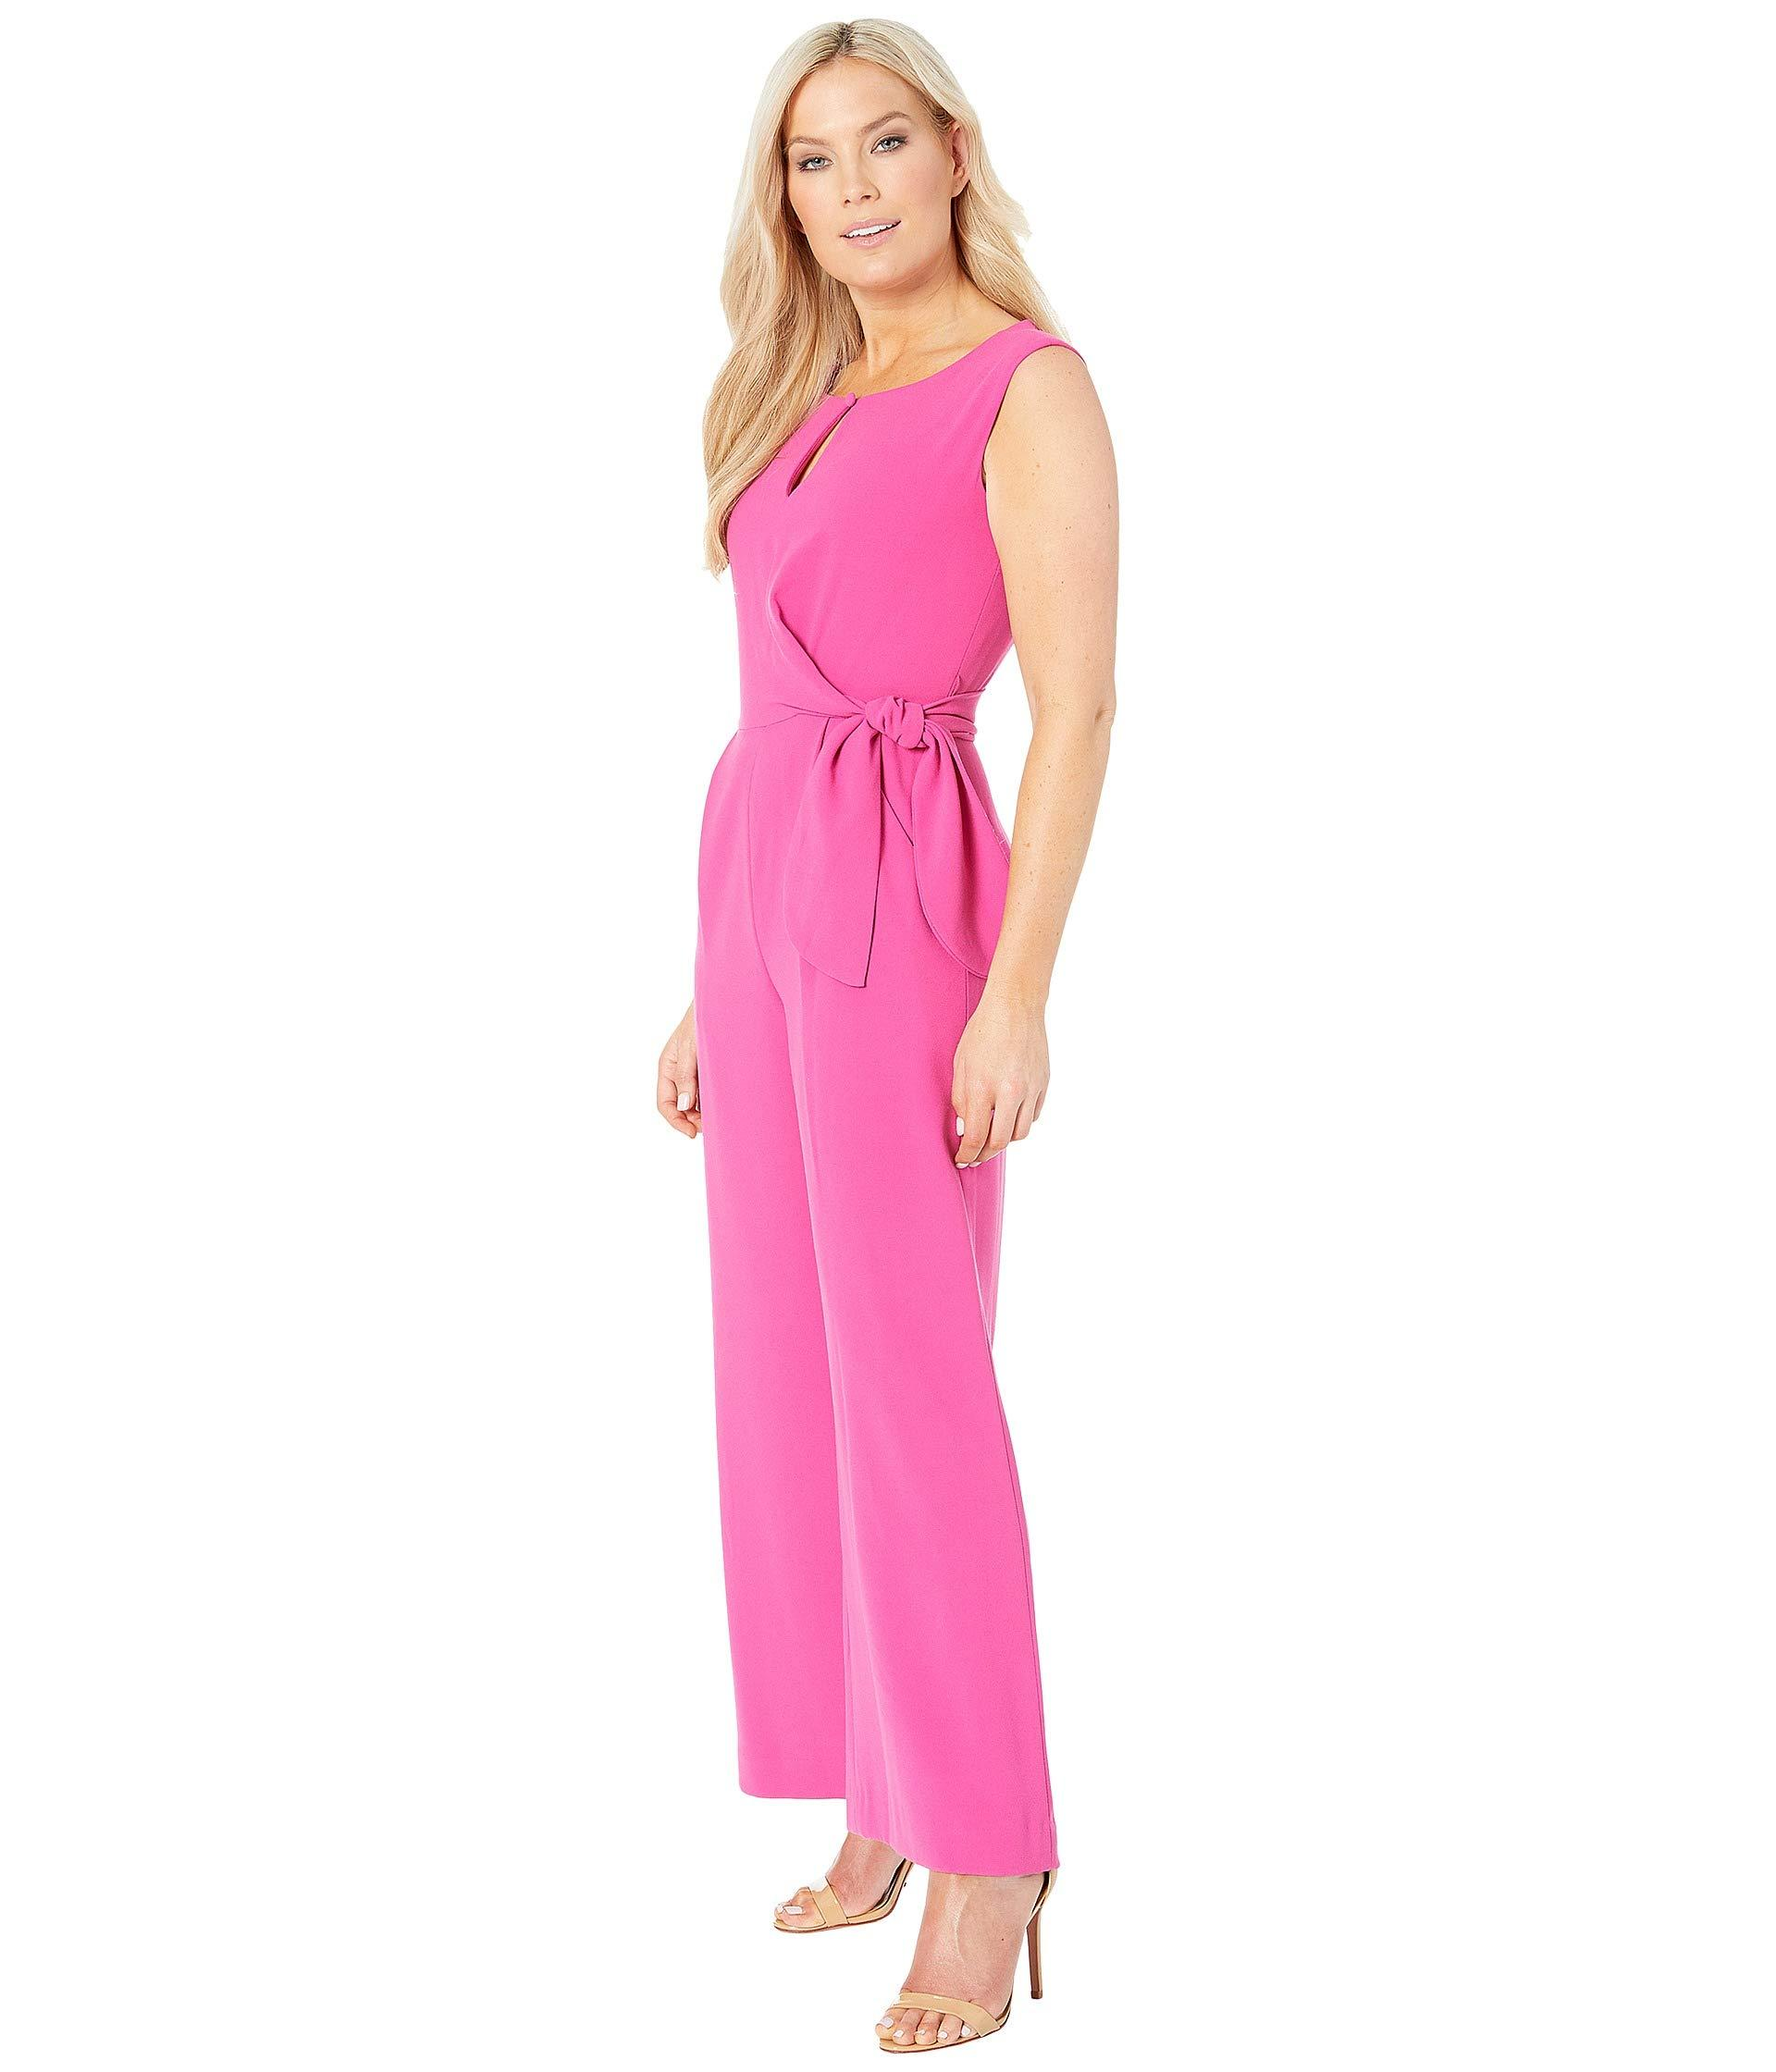 5861bb9f99d8 Lyst - Tahari Petite Tie Waist Crepe Jumpsuit (berry) Women s Jumpsuit    Rompers One Piece in Pink